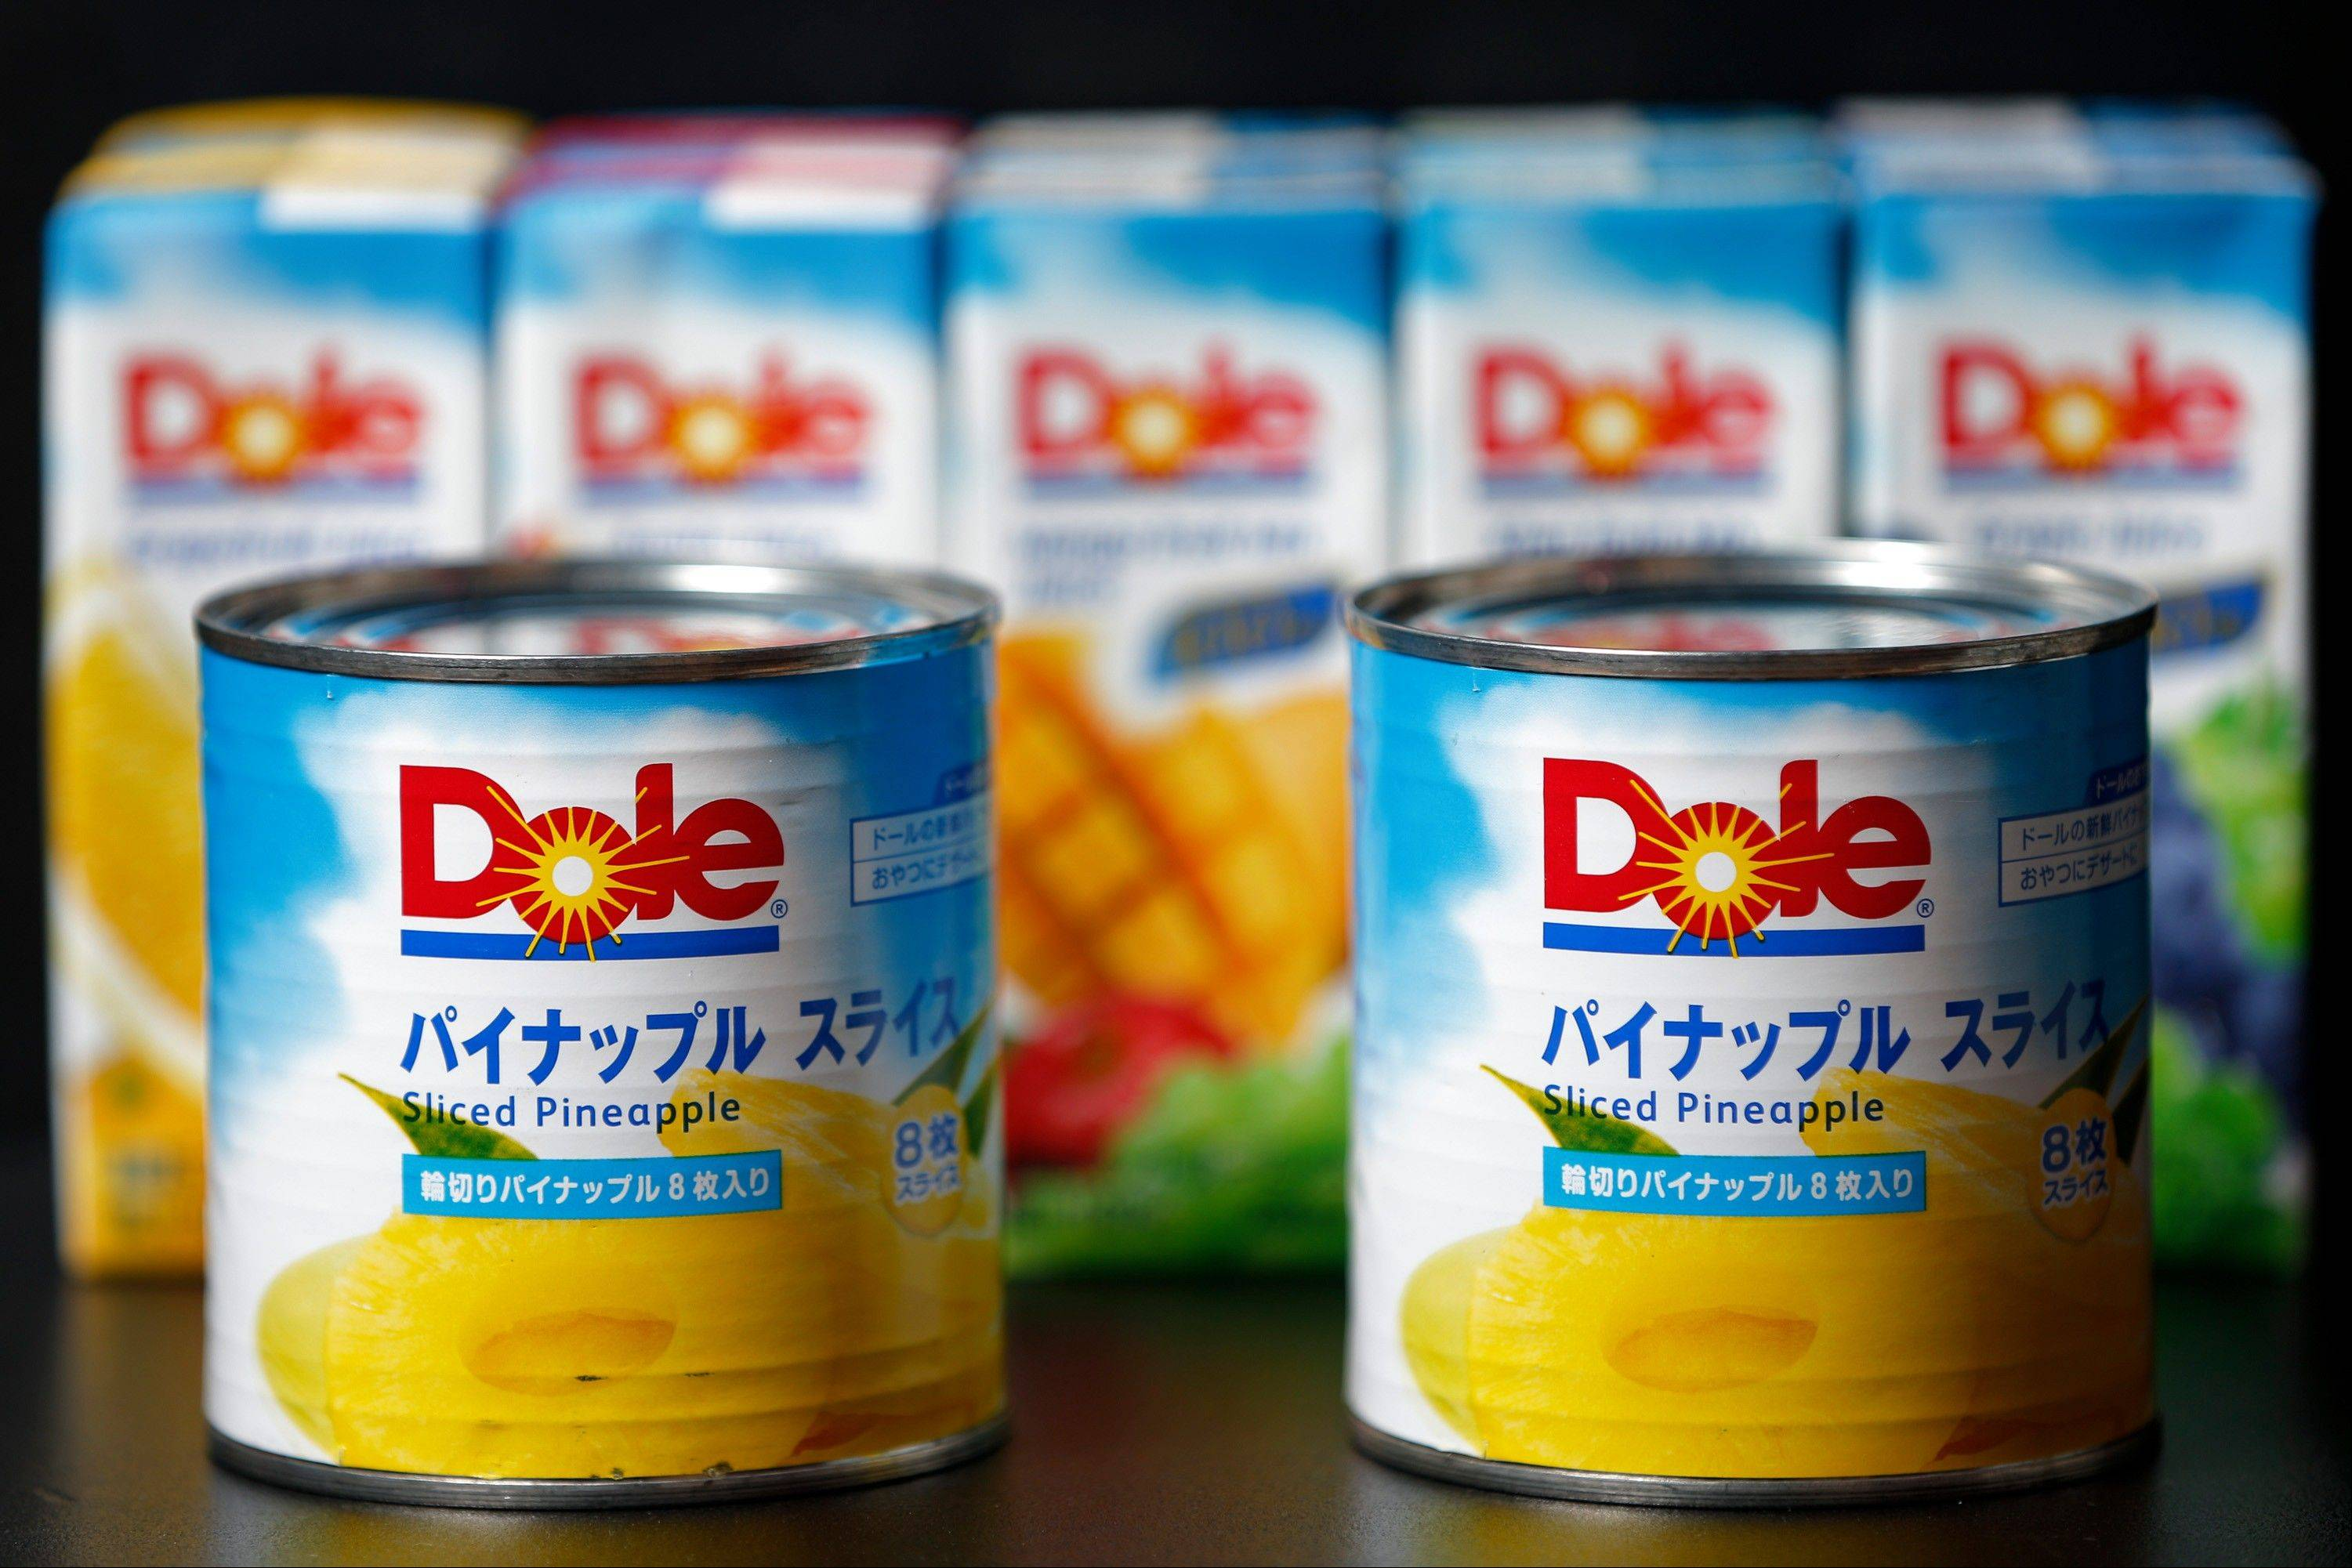 9Cans of Dole Food Co. sliced pineapple in front of cartons of the company's fruit juice in Soka City, Saitama Prefecture, Japan.